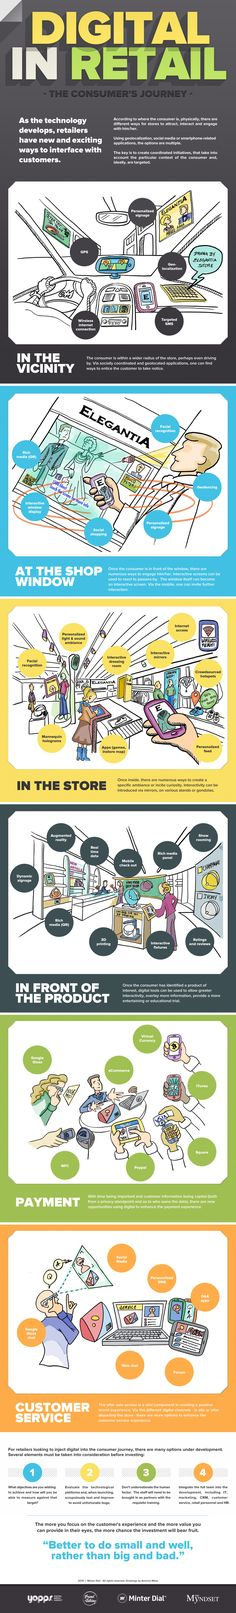 Digital in Retail [INFOGRAPHIC] New and Exciting Ways to Connect With Customers | #retail #infographic